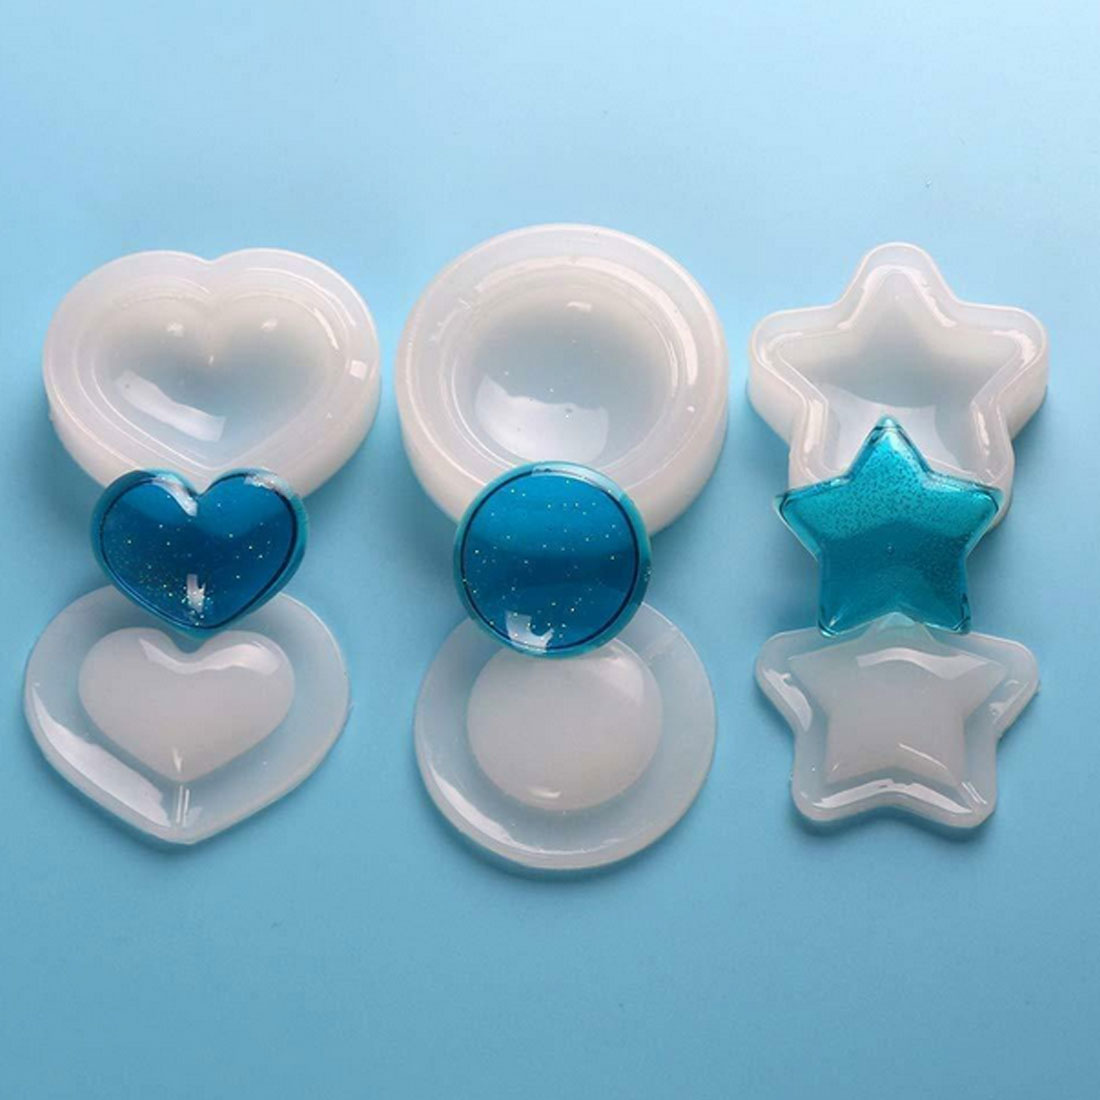 Chic Star Shells Heart Pendant Casting Silicone Resin Mold Making Craft Crystal DIY Jewelry Making Craft Cake Mold Tool in Jewelry Tools Equipments from Jewelry Accessories